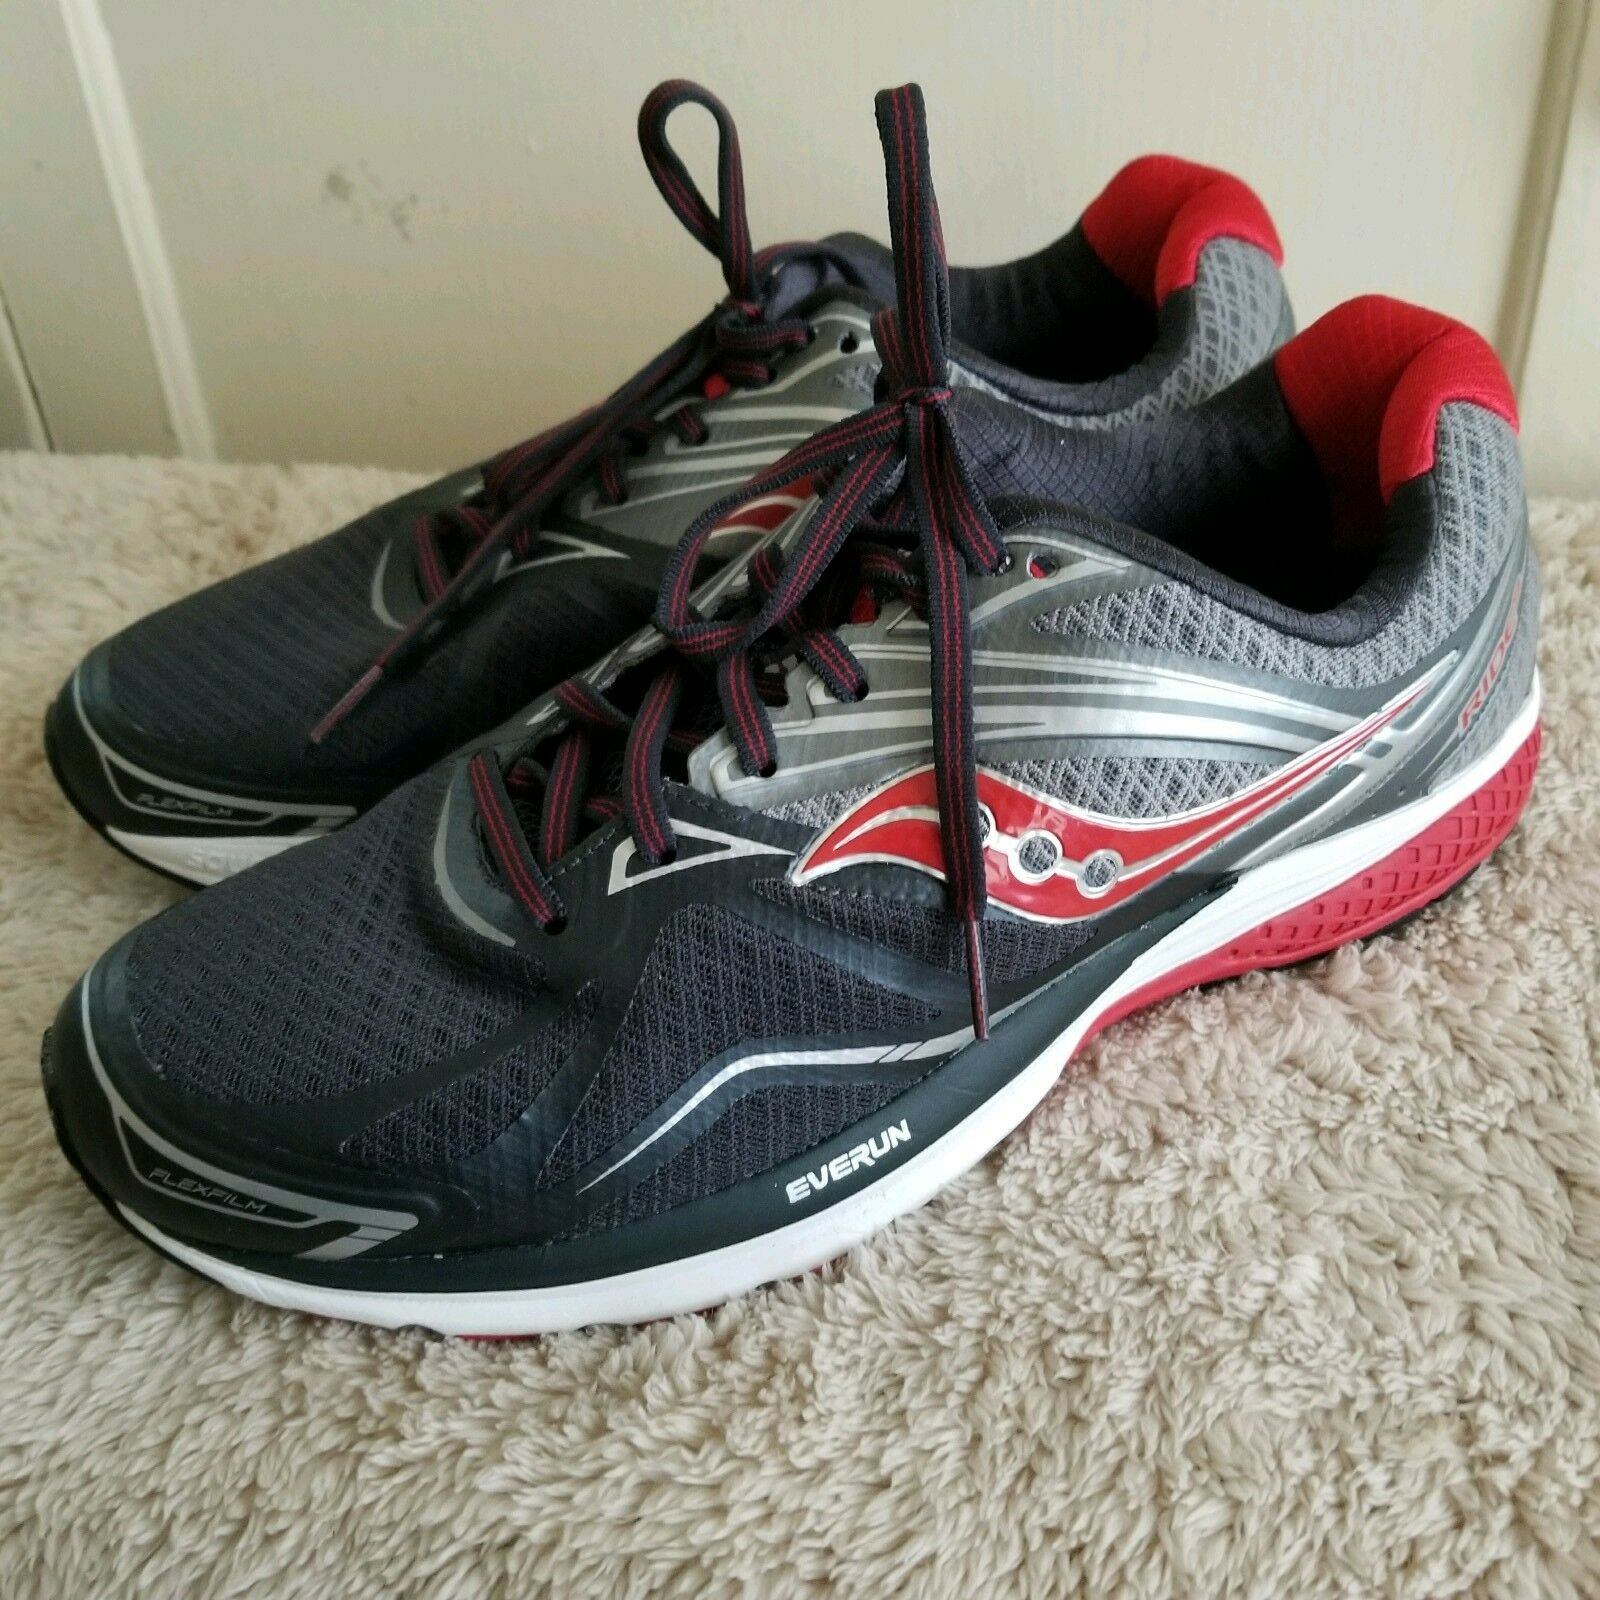 Saucony Men's Ride 9 Everun Running shoes Grey Charcoal Red 11.5 W US New